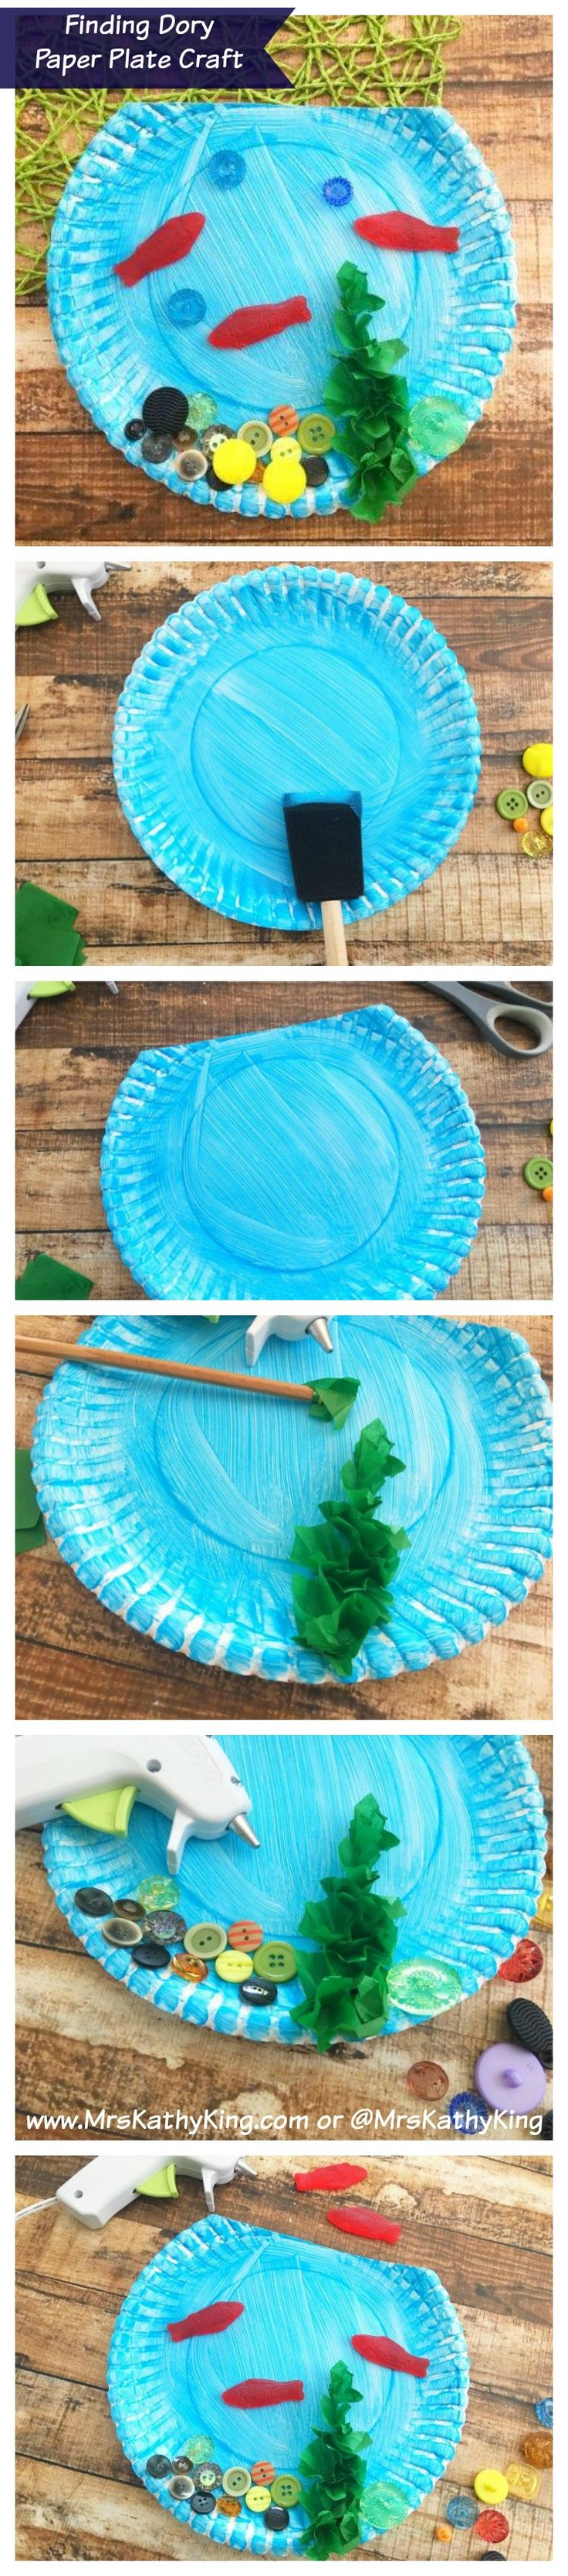 Finding Dory Birthday Party Idea  Finding Dory Paper Plate